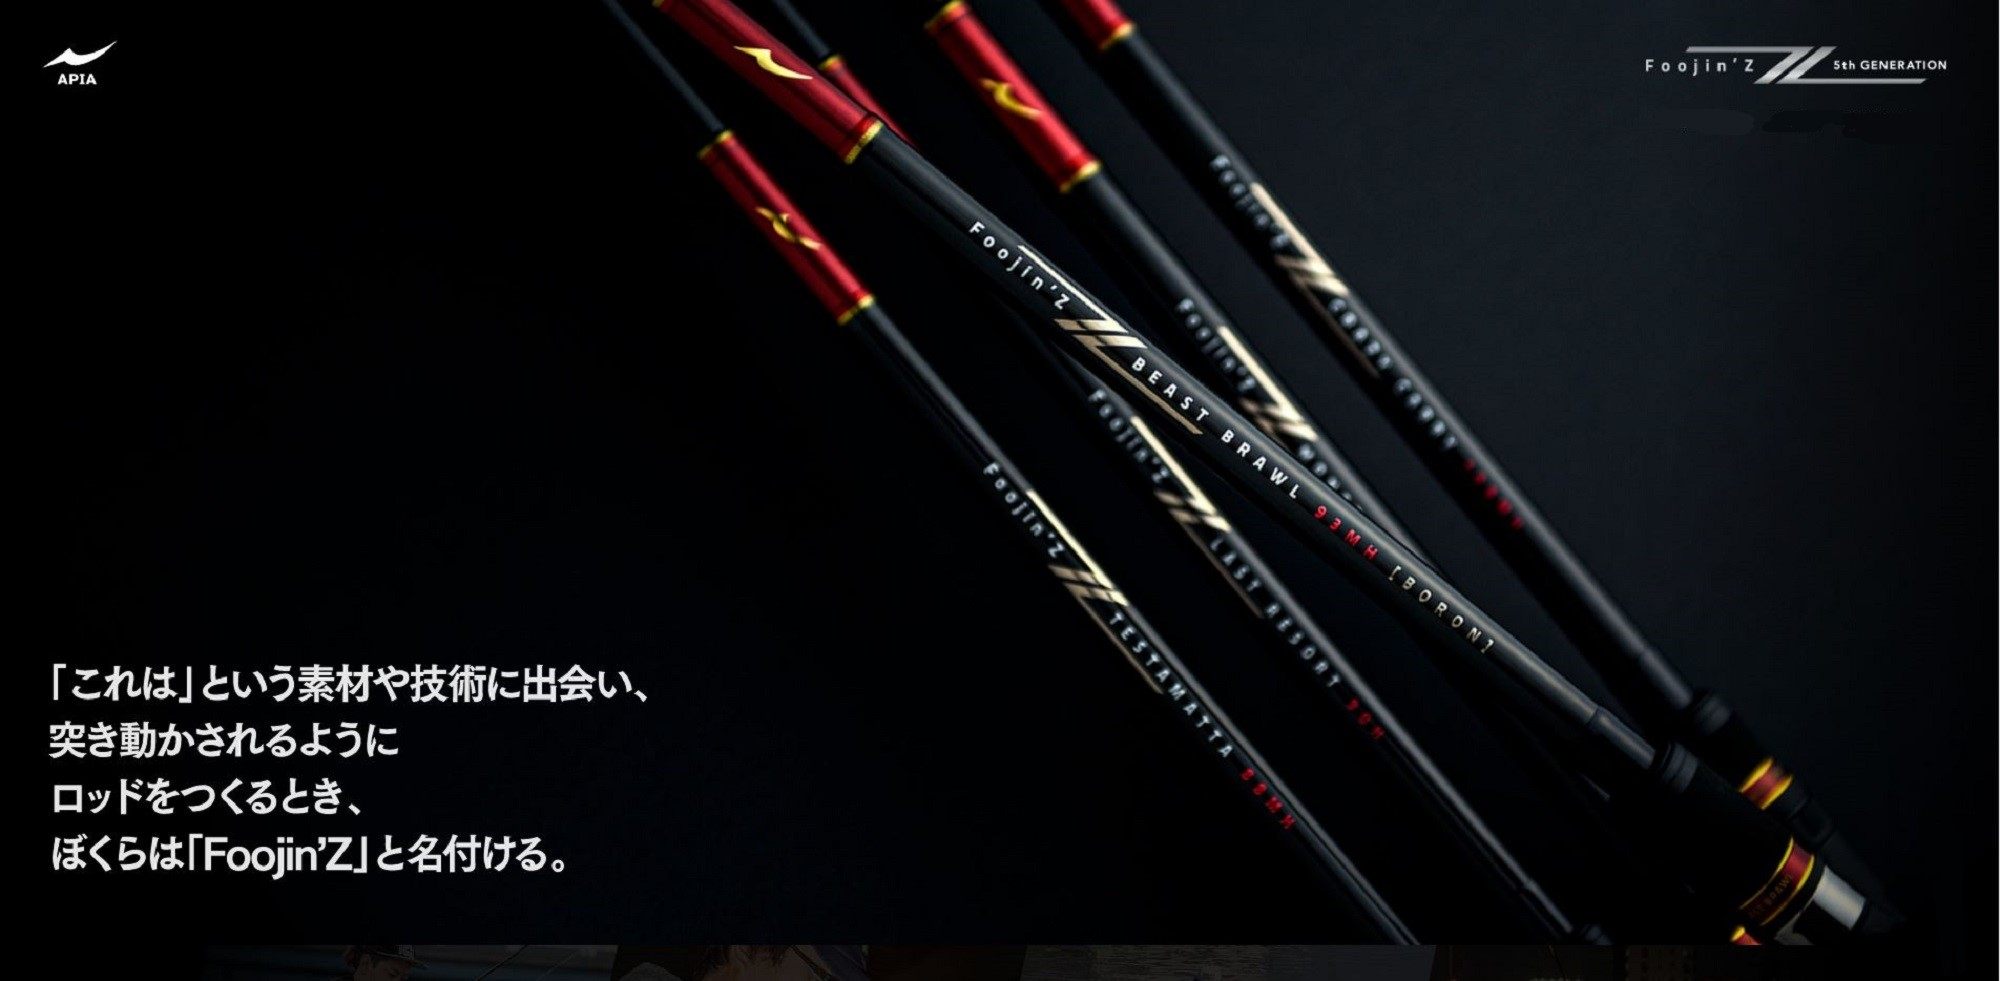 Apia Rod Spinning Foojin'Z Crazy Carry 108MH (2065)